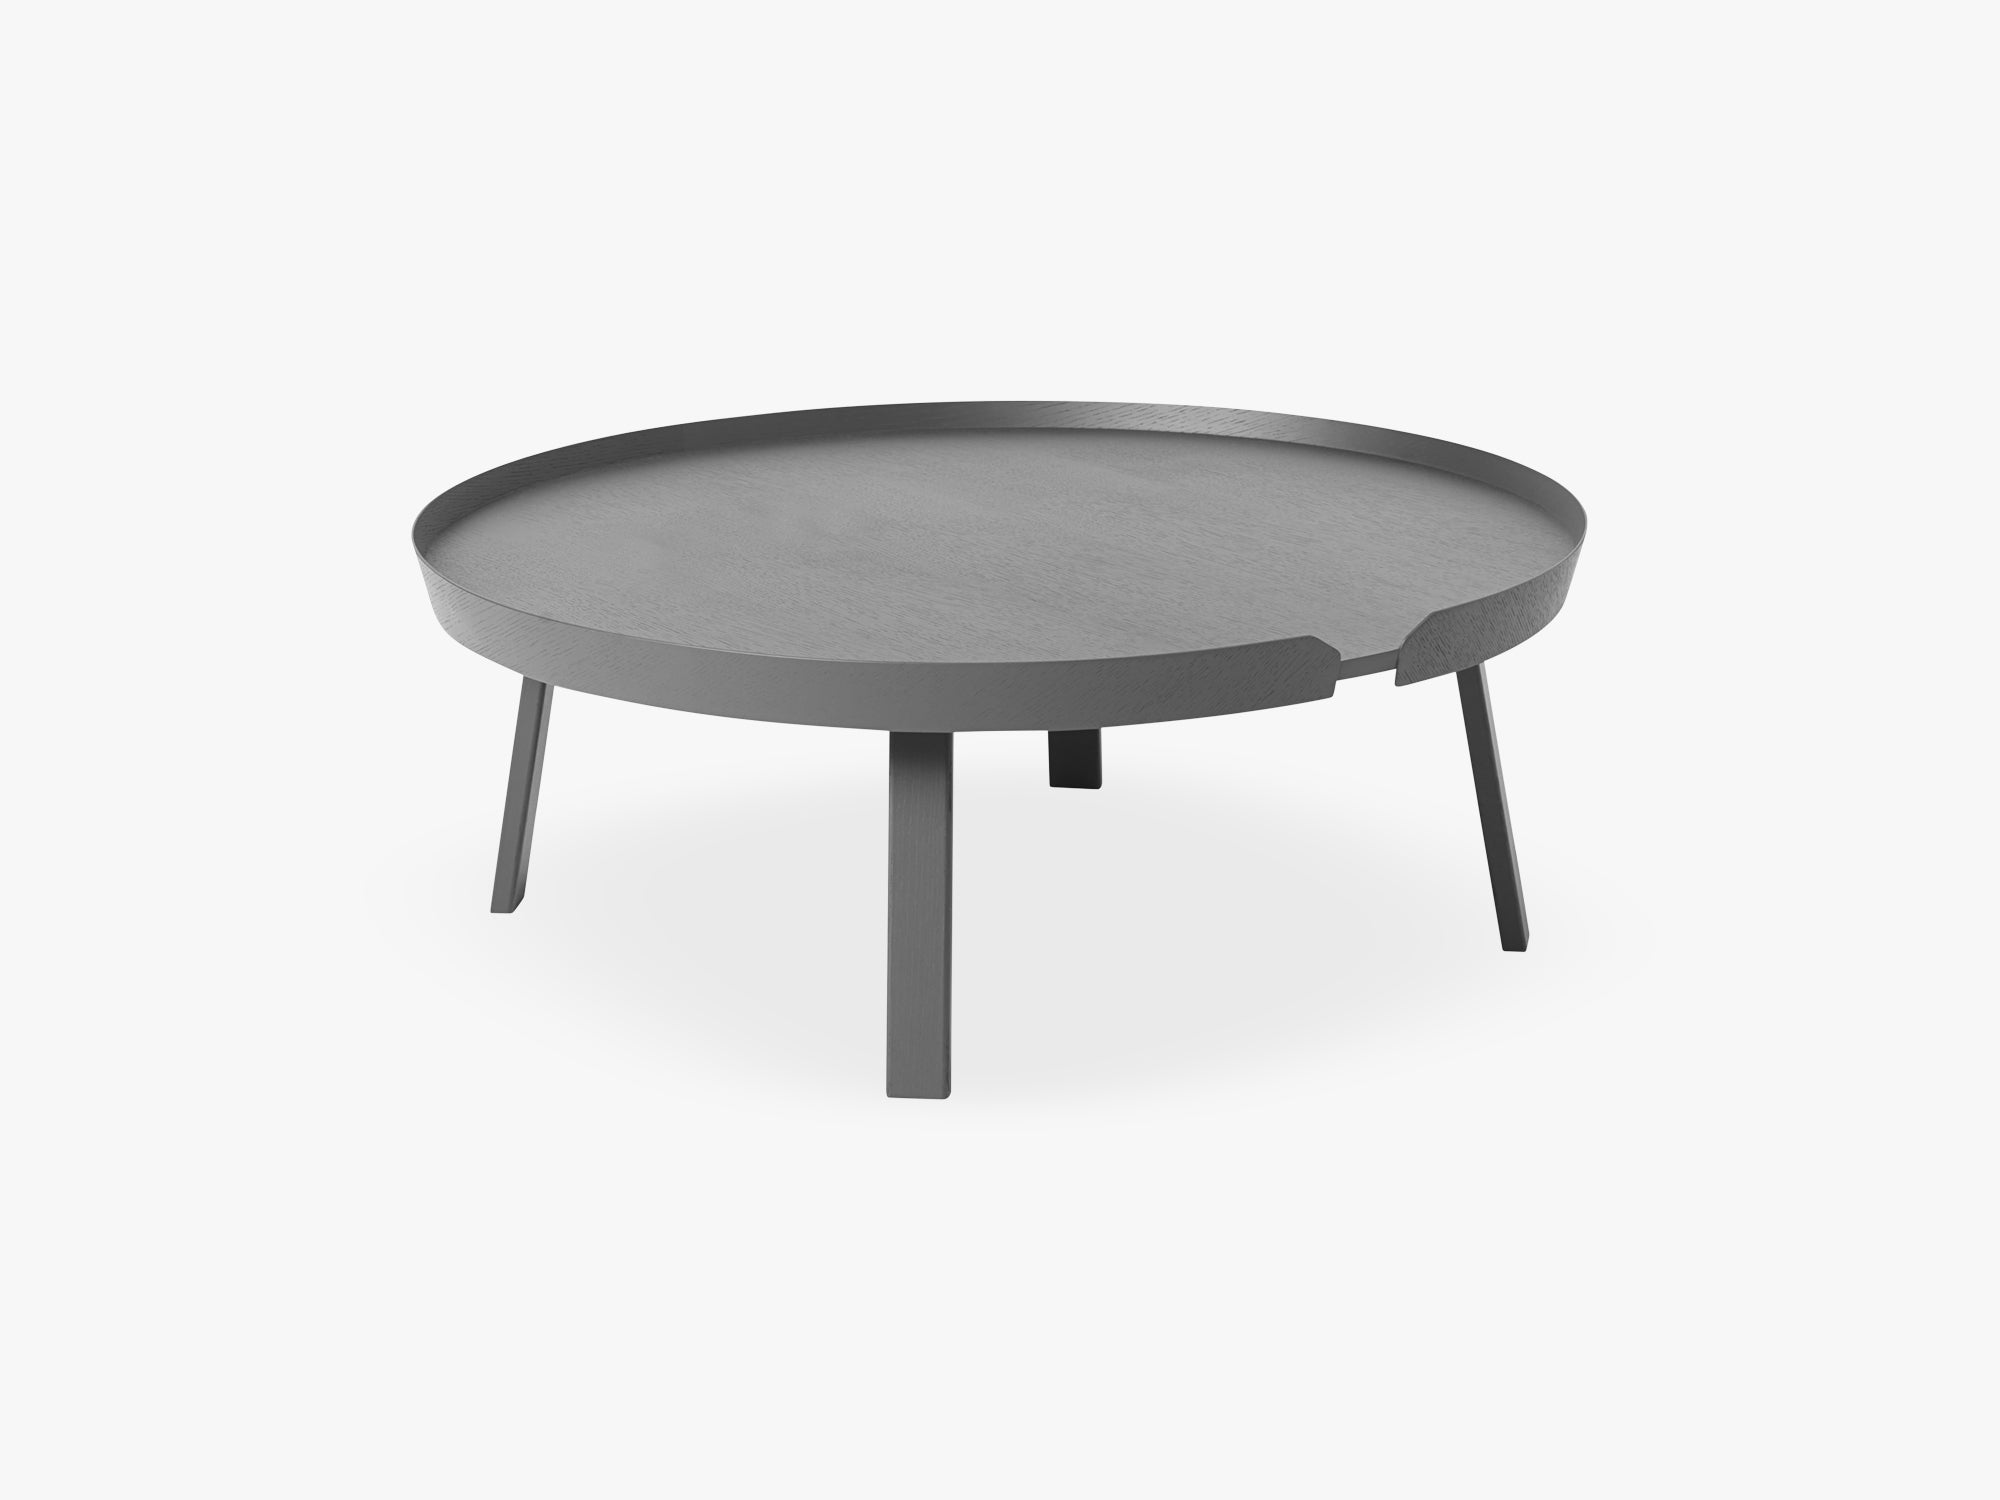 Around Coffee Table - Xl - Extra Large, Dark Grey fra Muuto